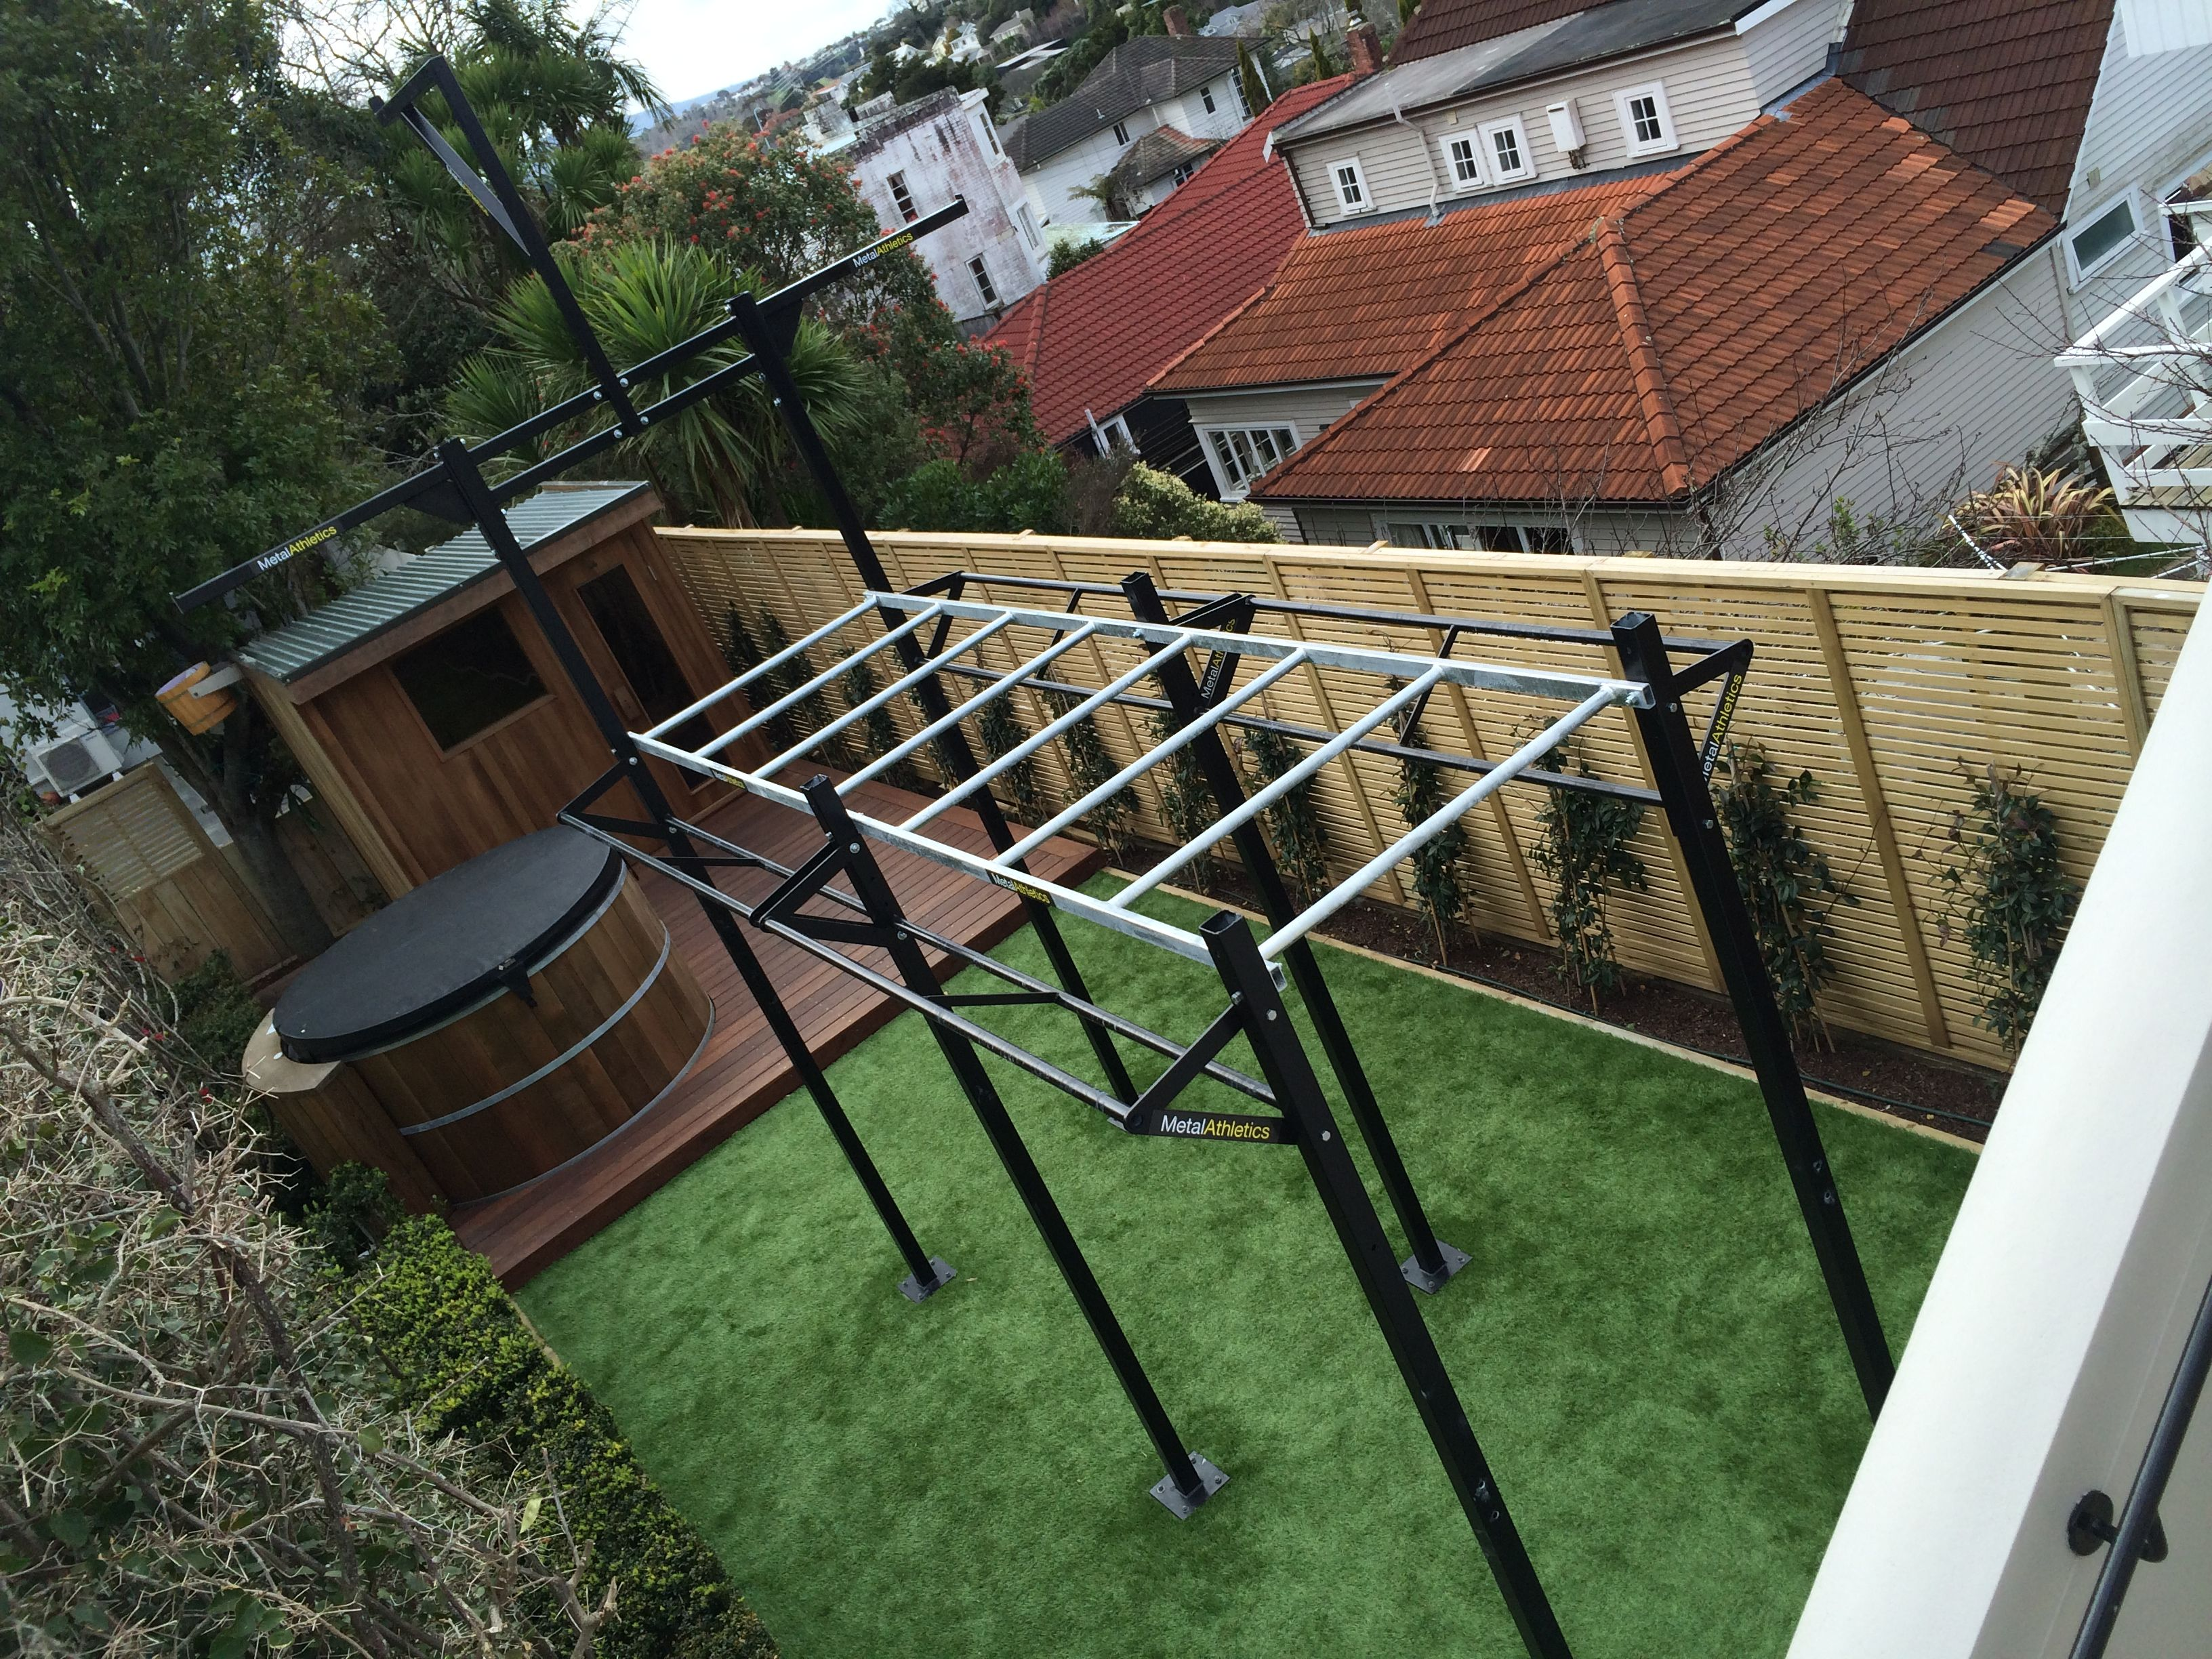 Outdoor monkey bar rig for a residential home gym in remuera